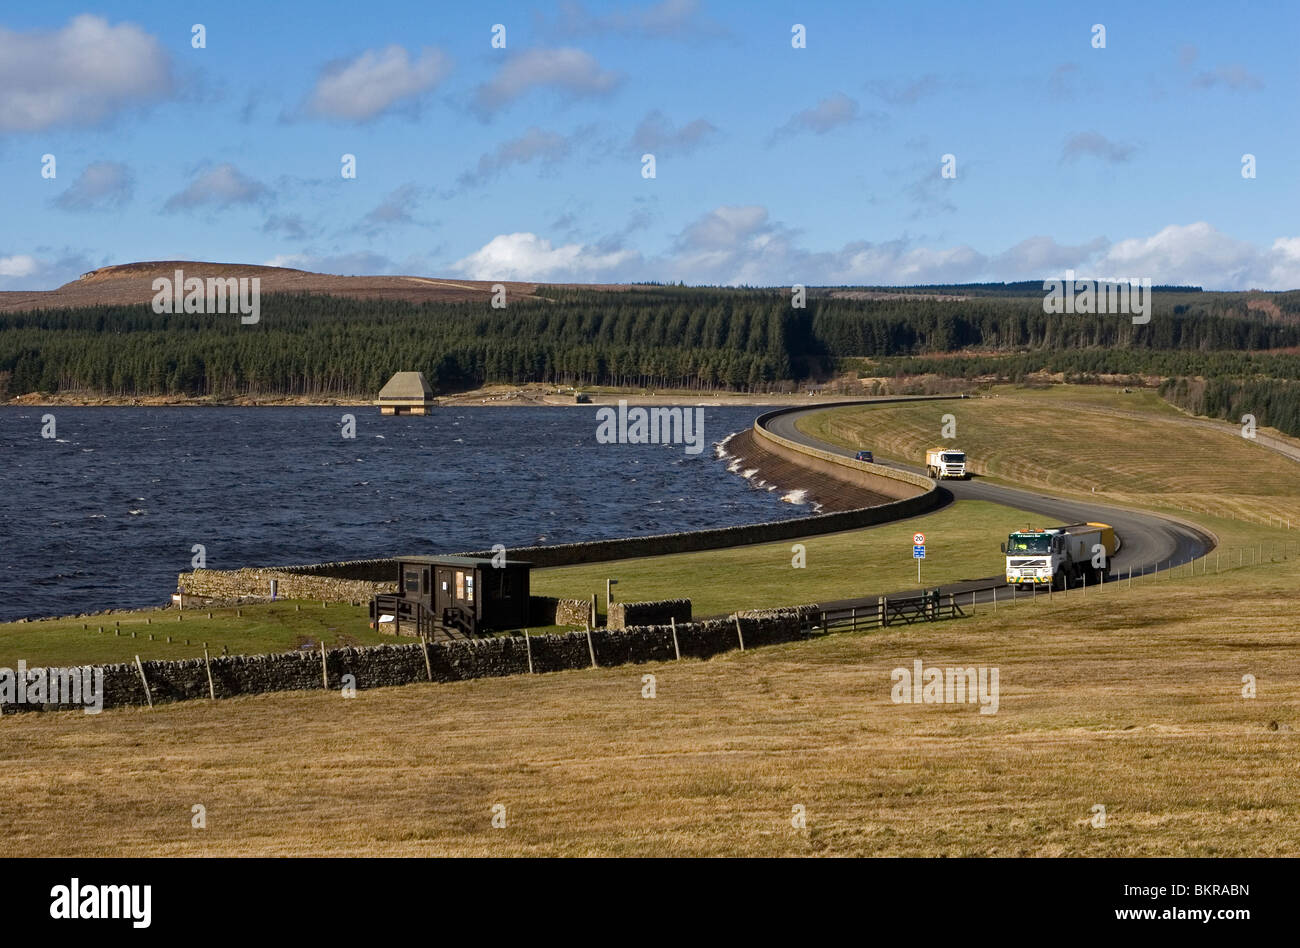 Kielder Water reservoir and dam with valve tower - Stock Image